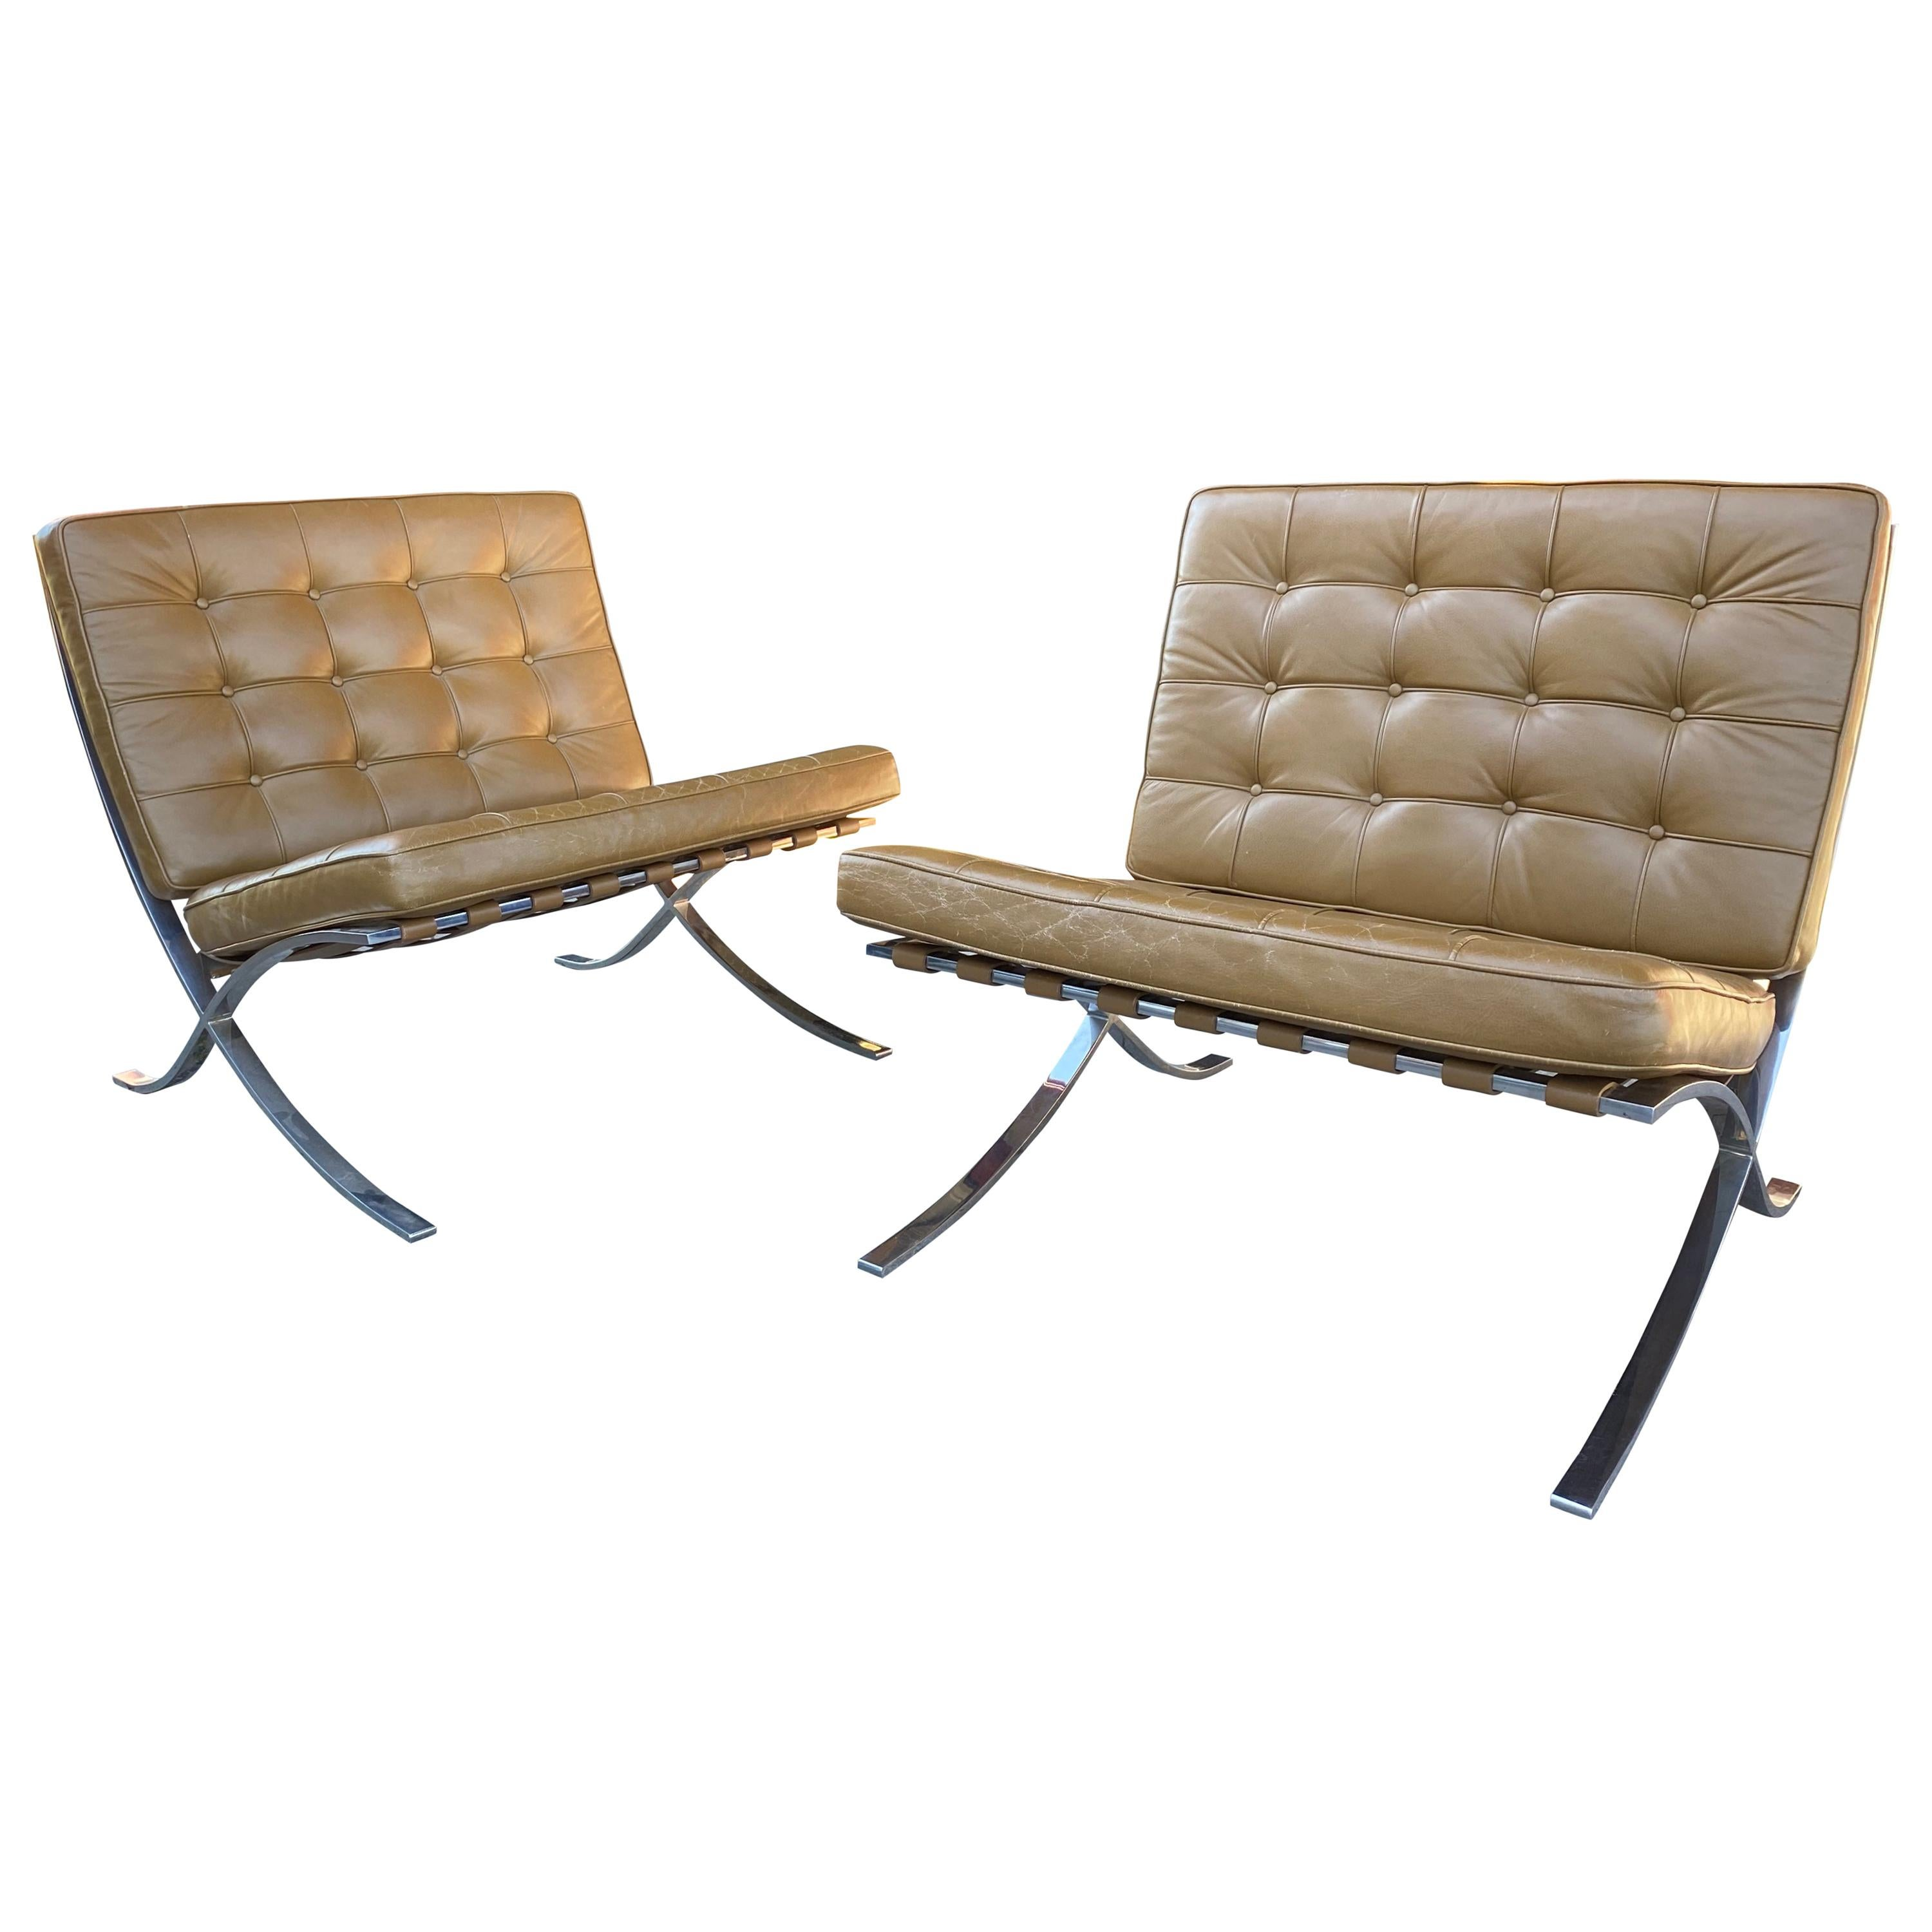 Rare 1960s Gerald R.Griffith Barcelona Chairs, Mies van der Rohe